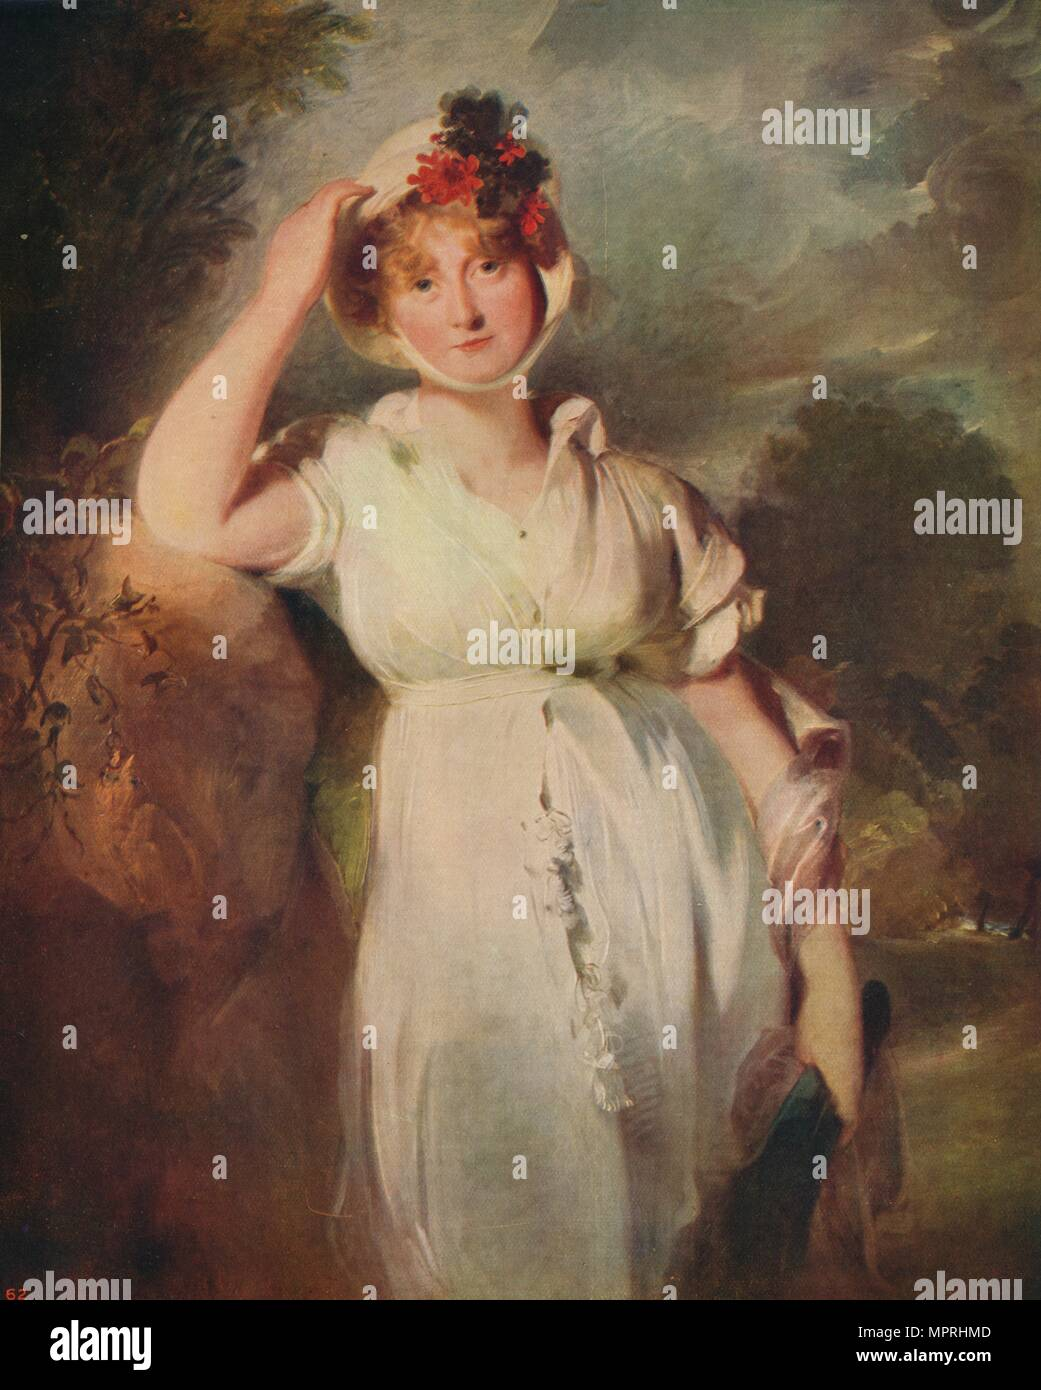 'Caroline of Brunswick (1768-1821), Queen of George IV', 1798, (c1915). Artist: Thomas Lawrence. - Stock Image